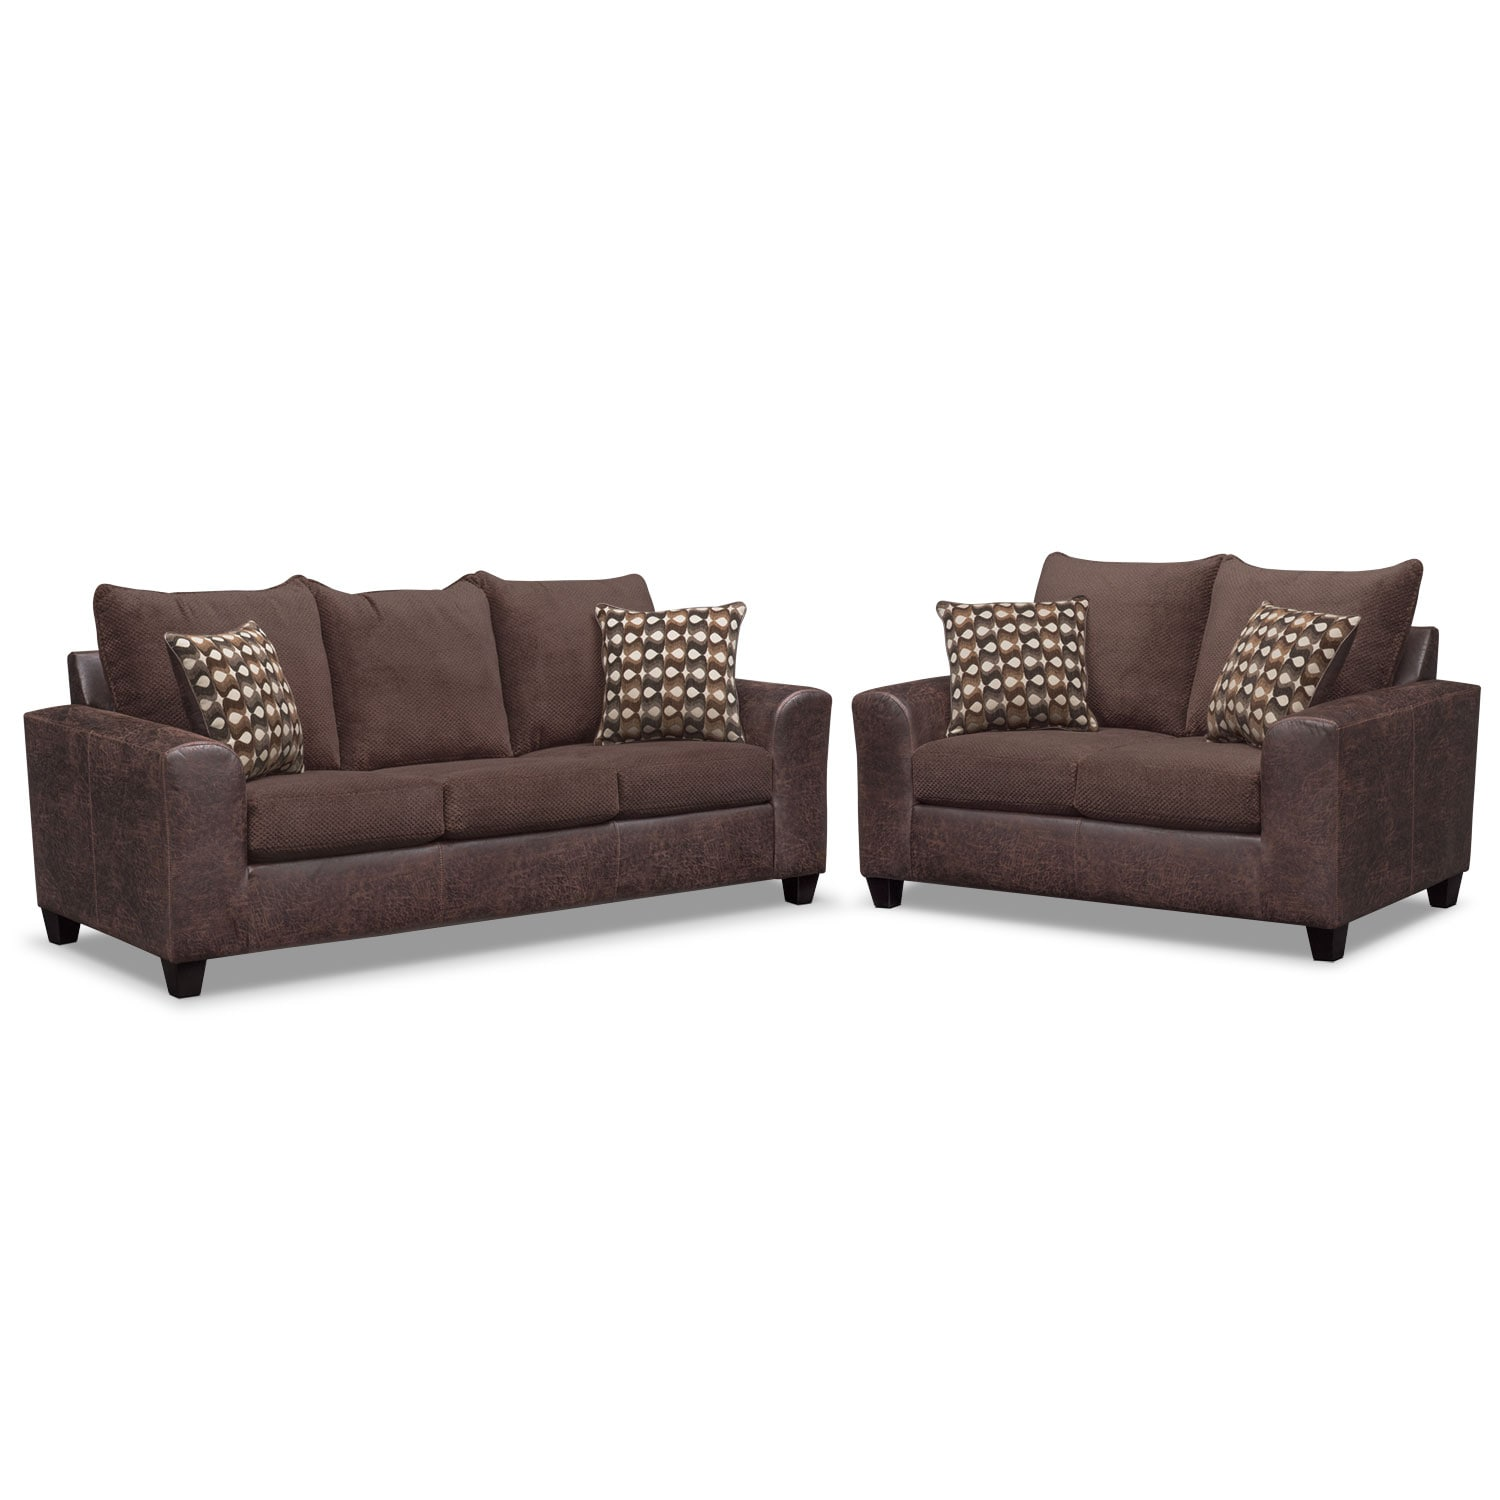 Living Room Furniture - Brando Queen Sleeper Sofa and Loveseat Set